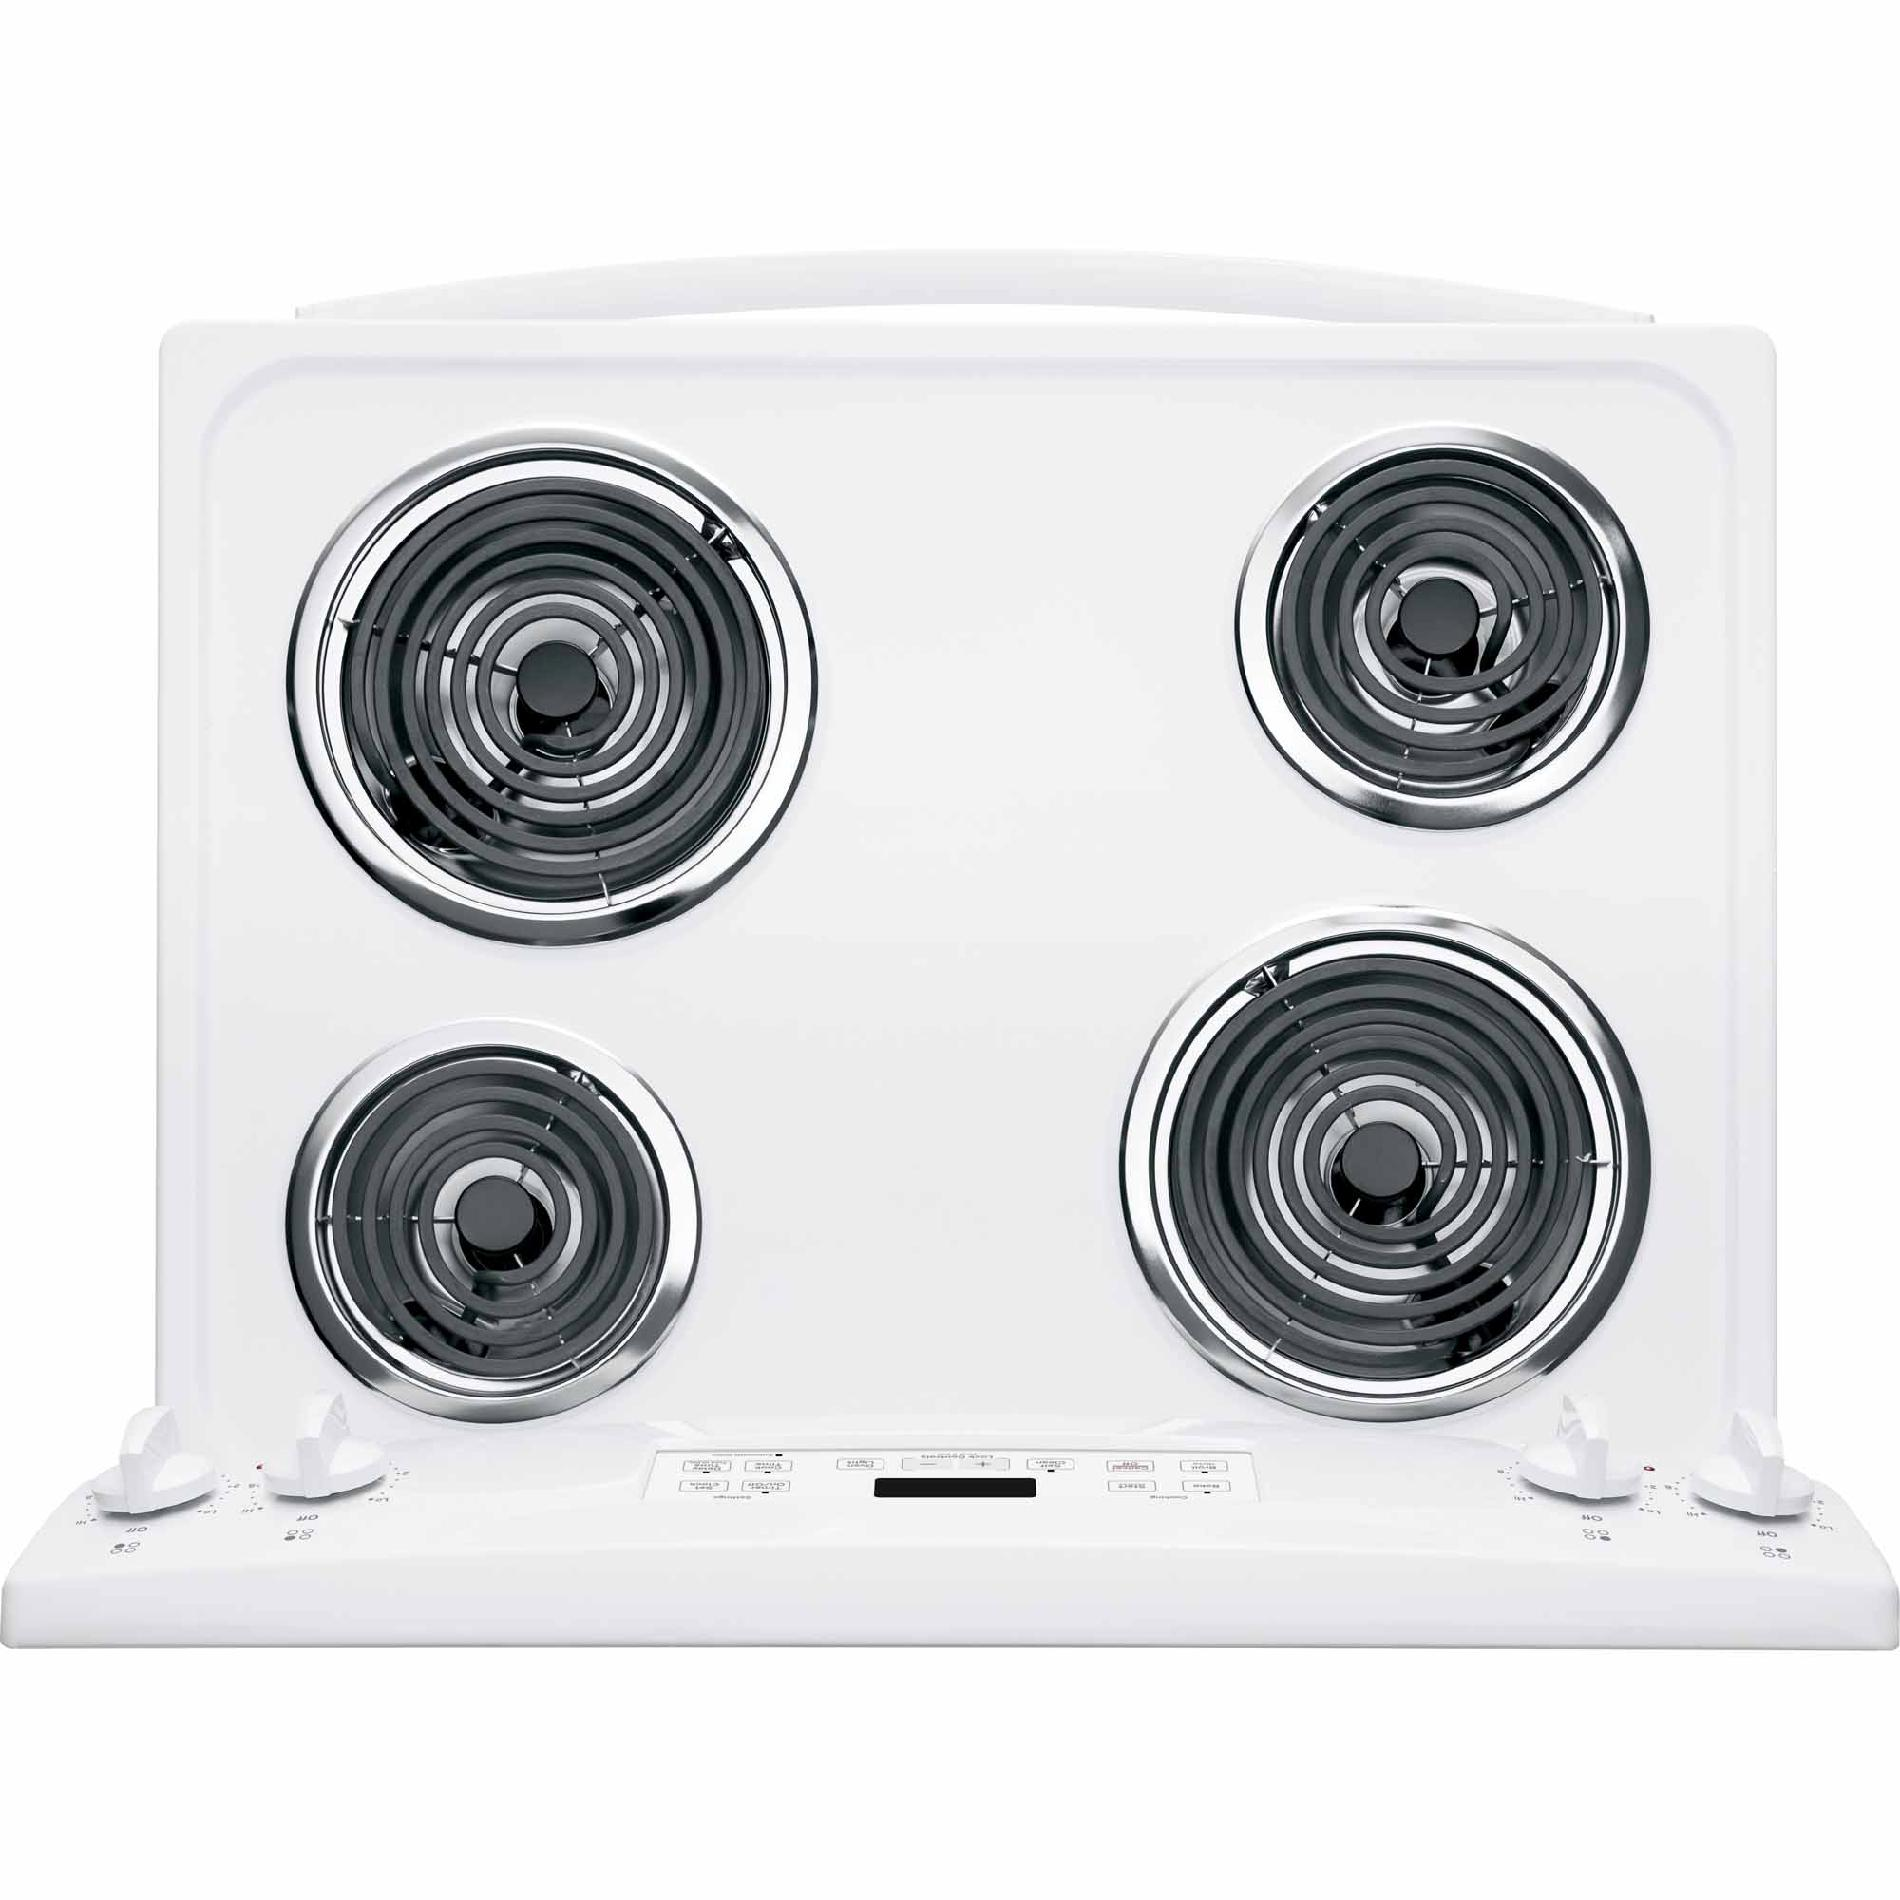 GE 5.3 cu. ft. Electric Range - White